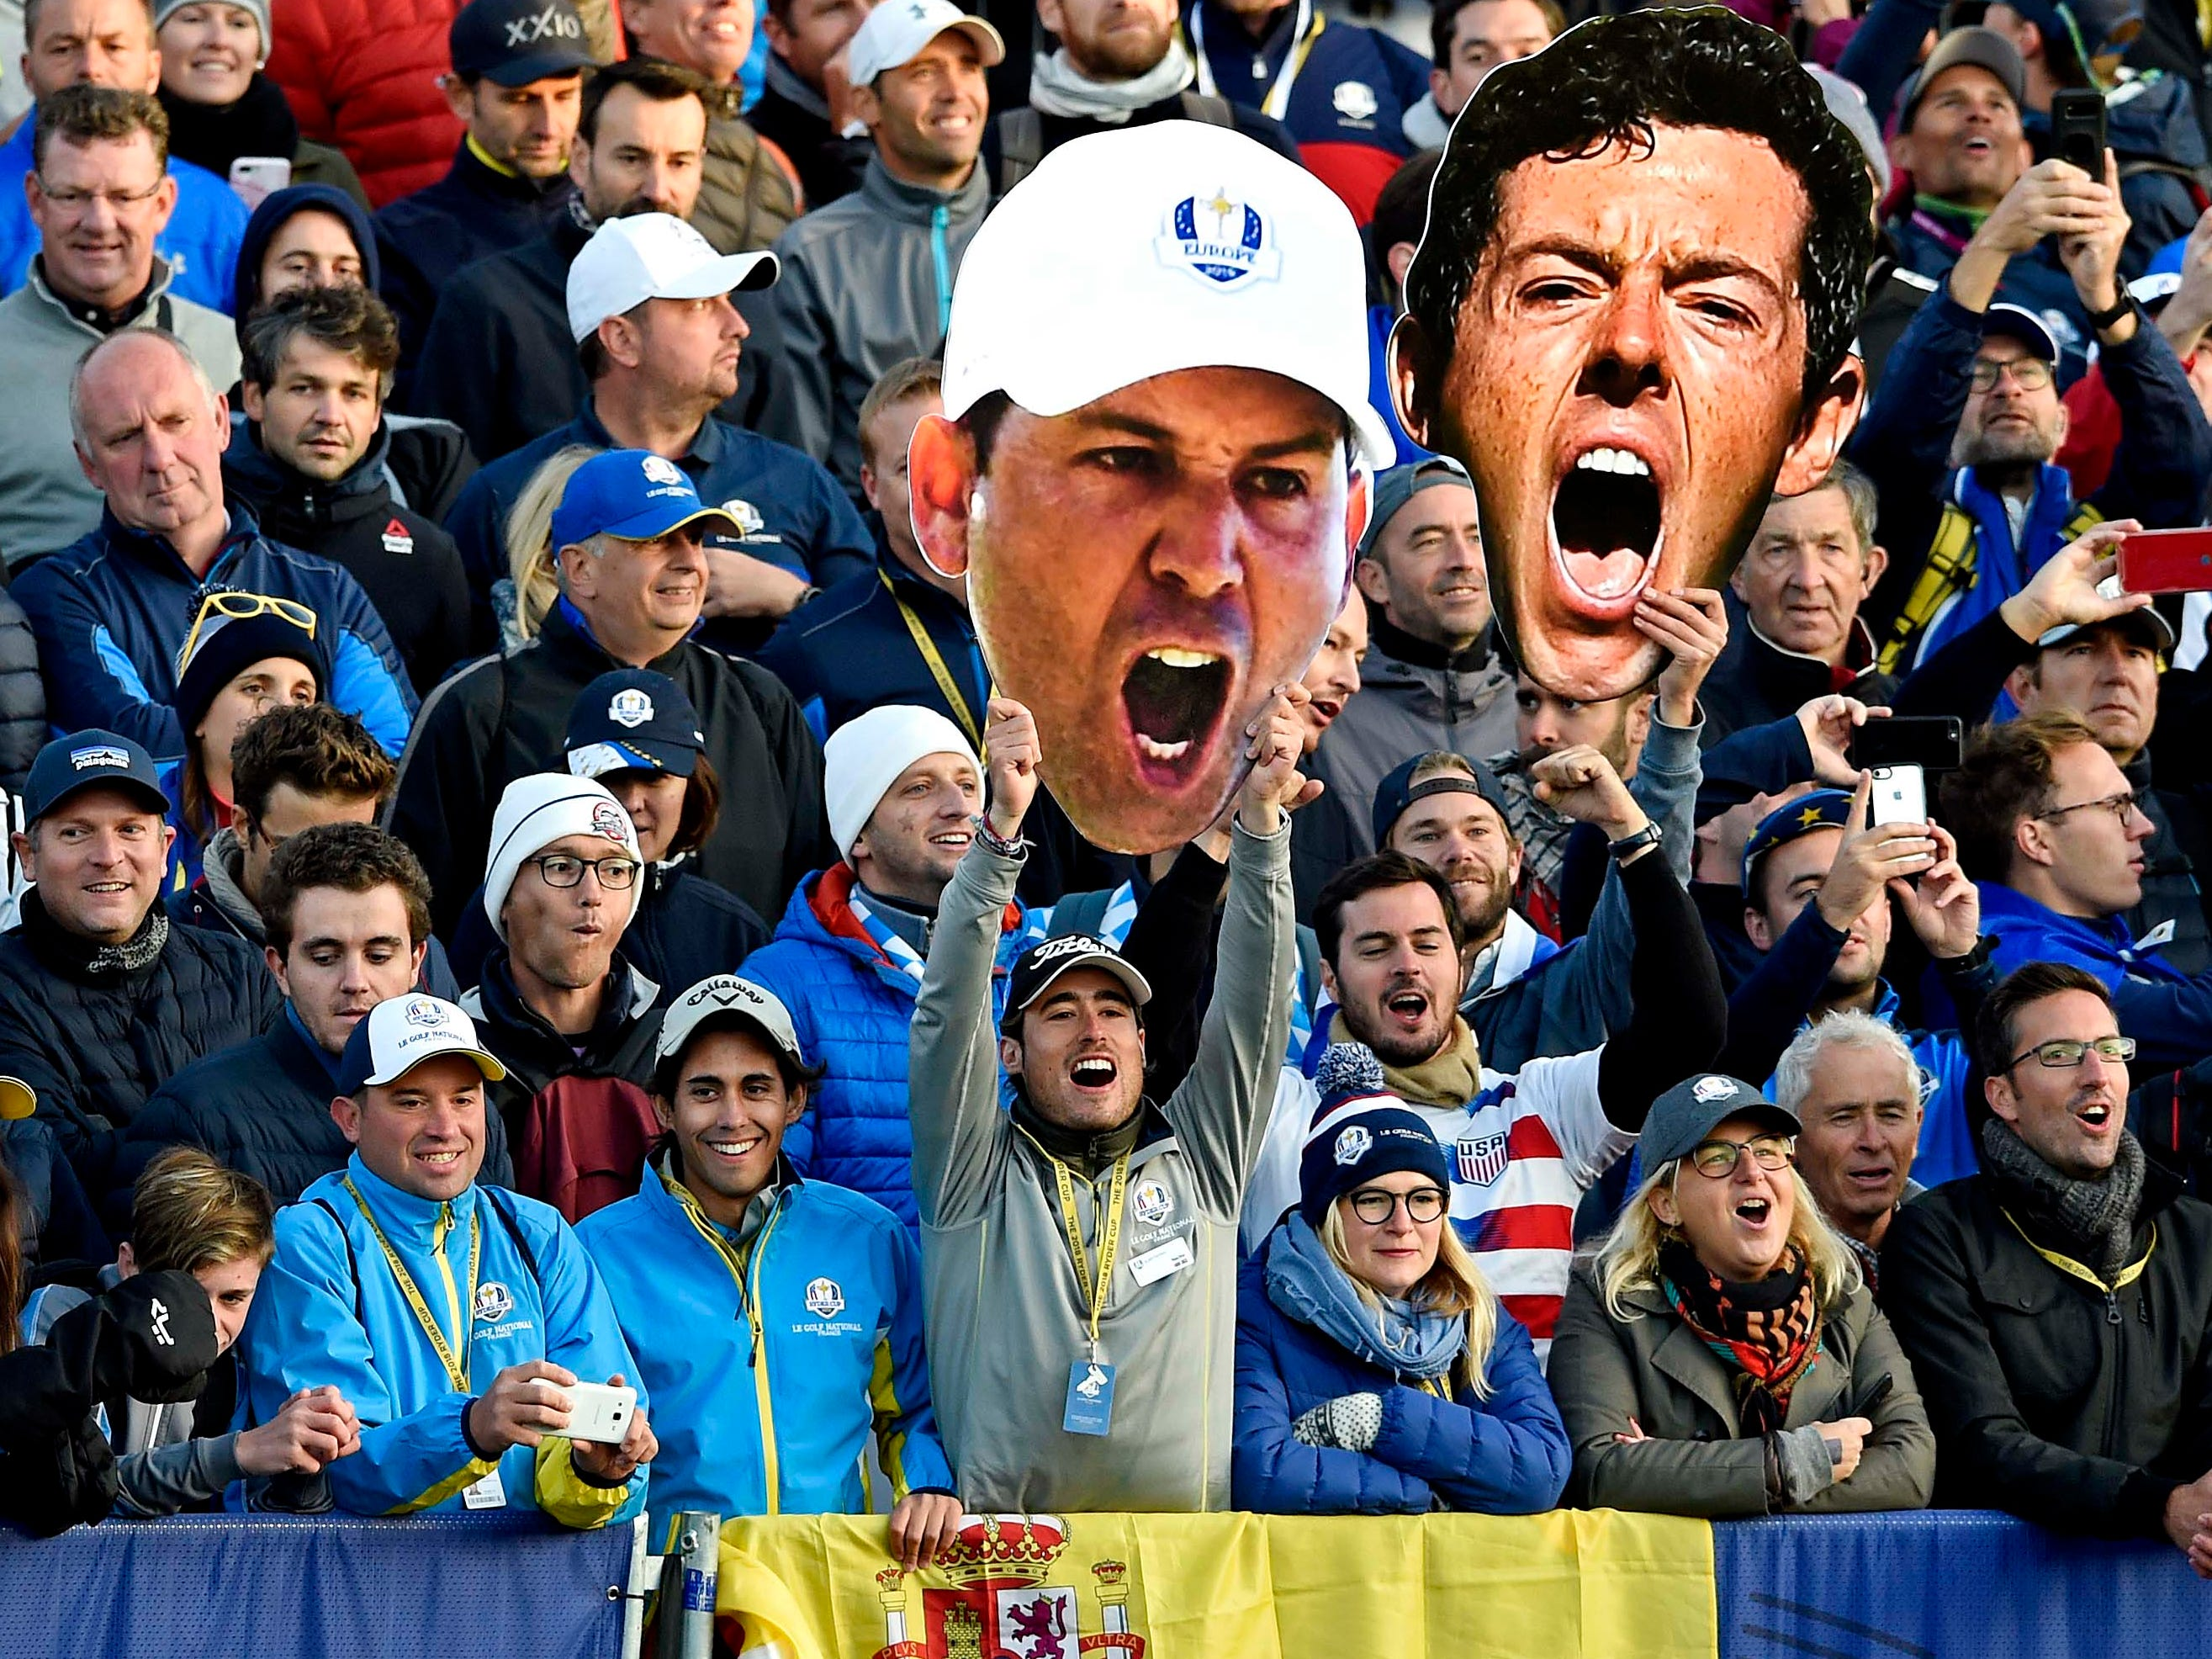 Fans cheer (with huge cutouts of Sergio Garcia and Rory McIlroy) on the first tee during the Ryder Cup matches on Saturday.